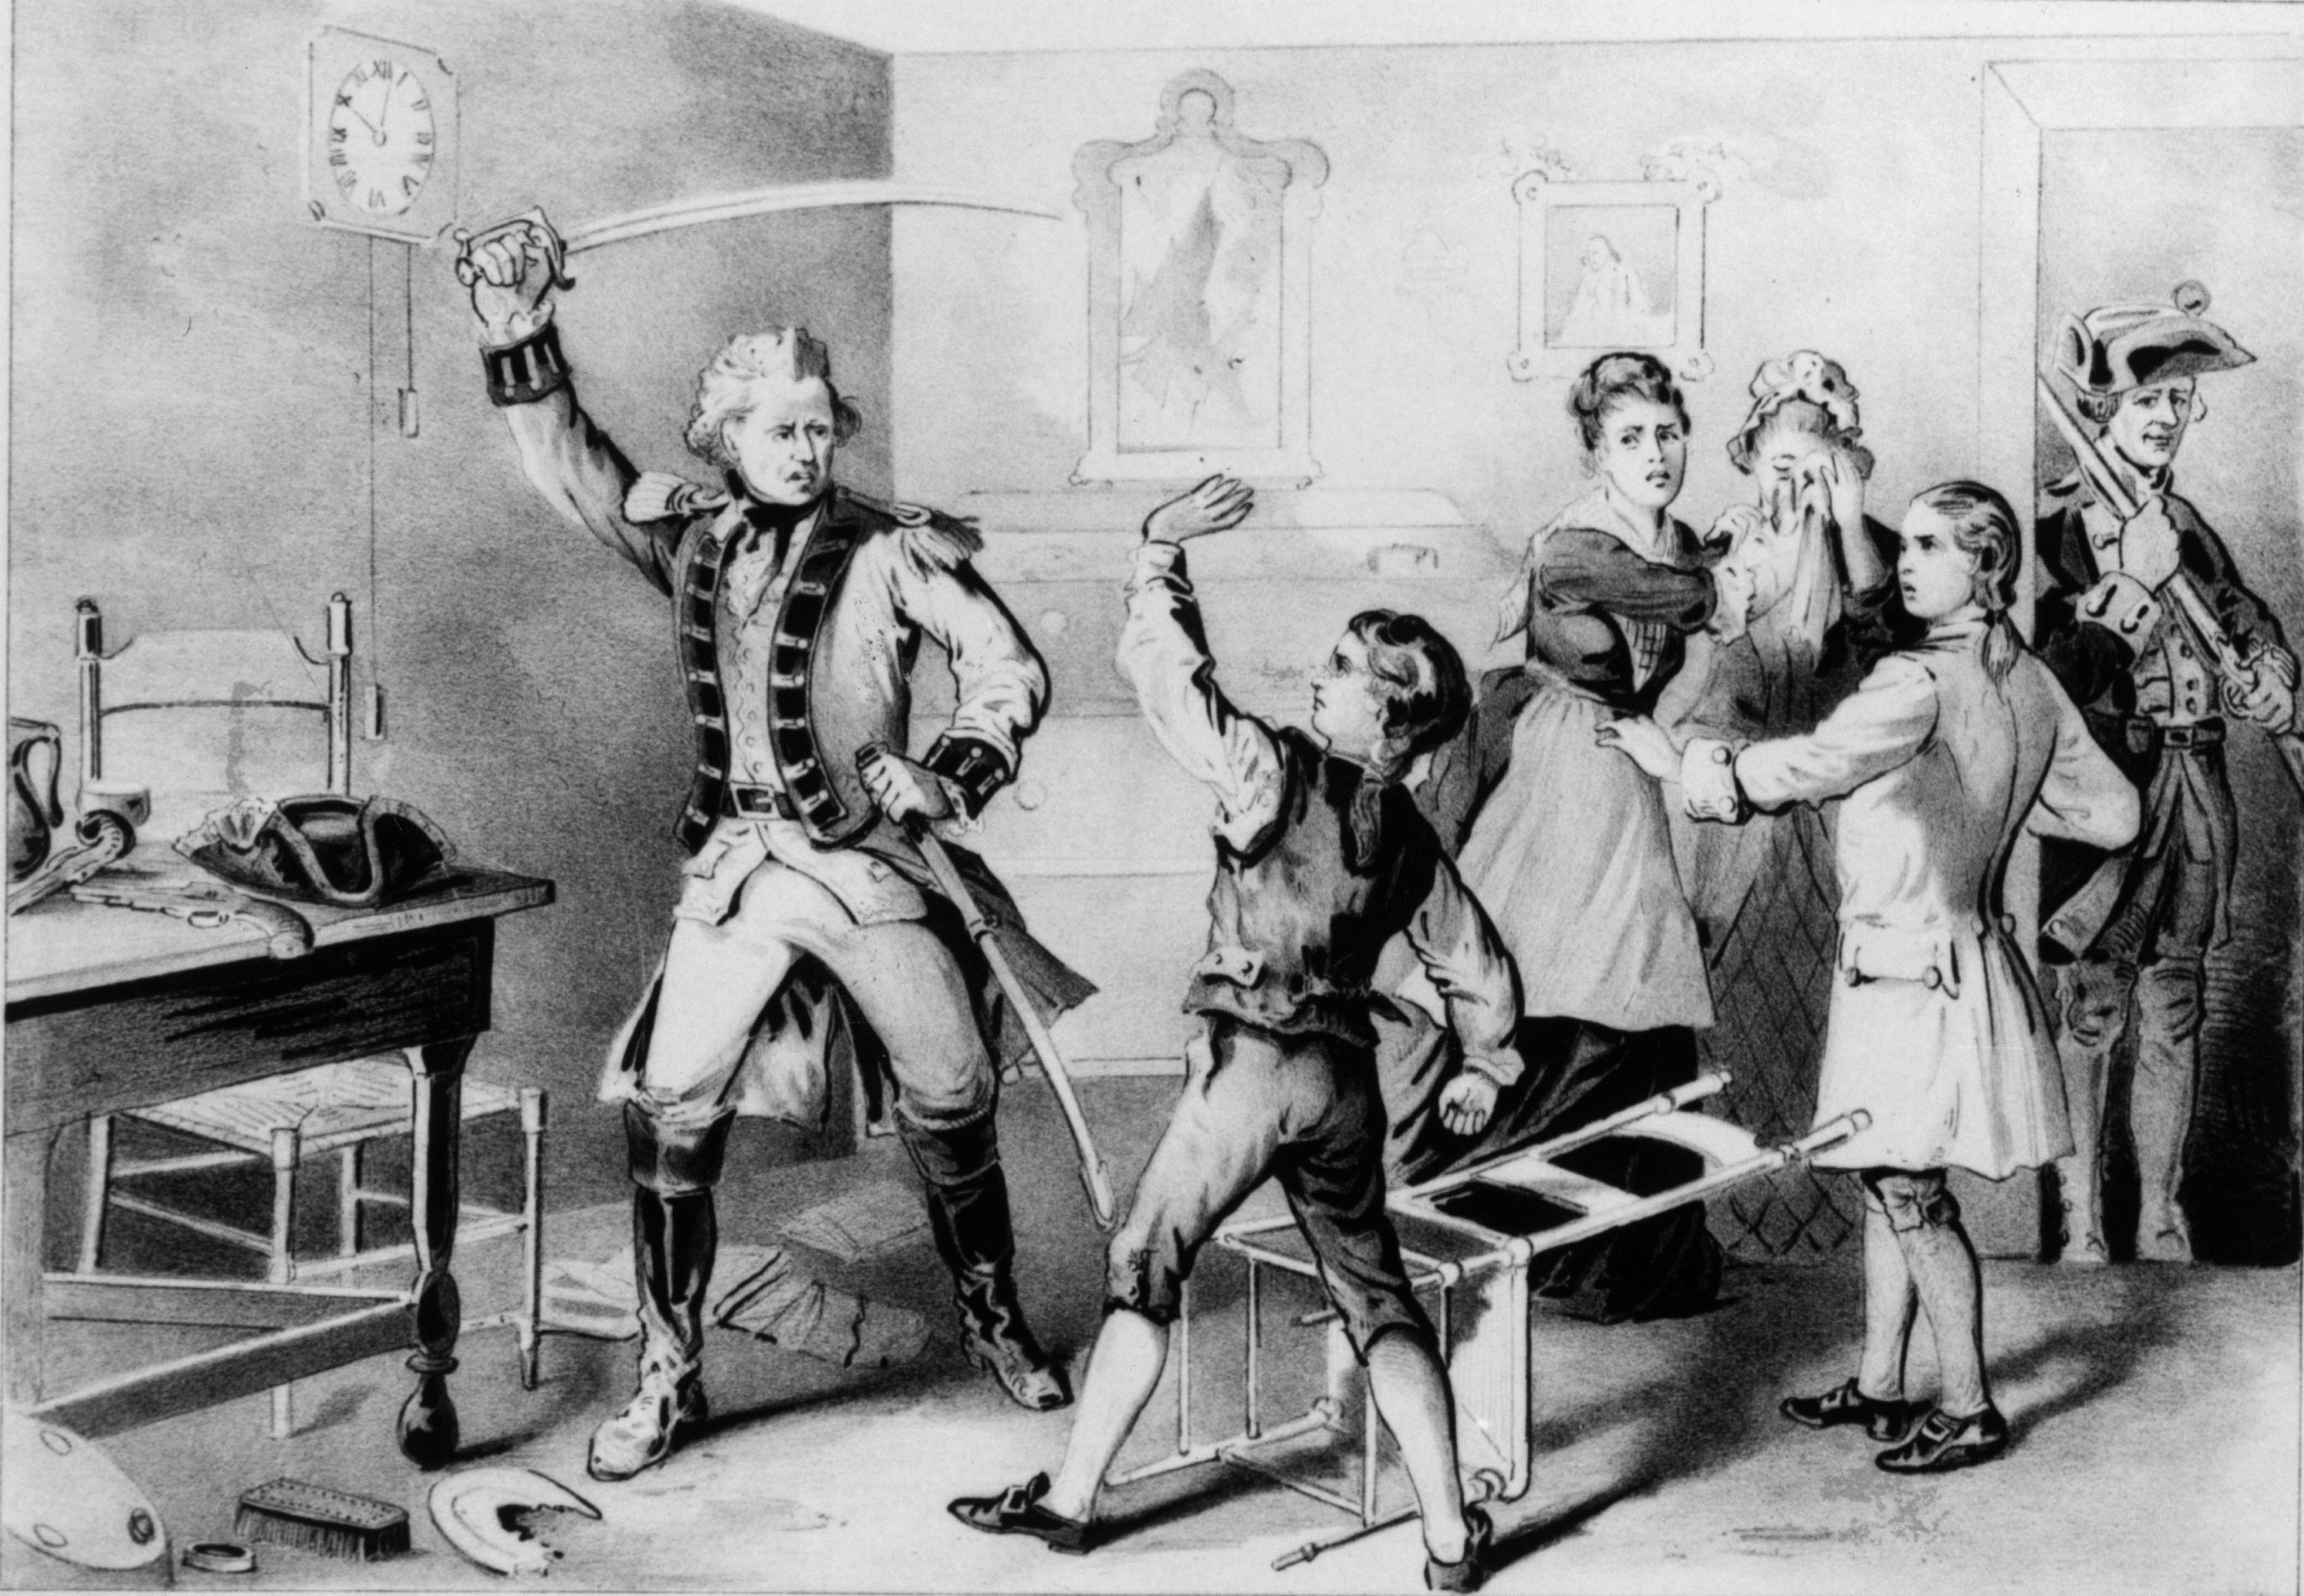 Andrew Jackson as a boy being attacked by a British officer